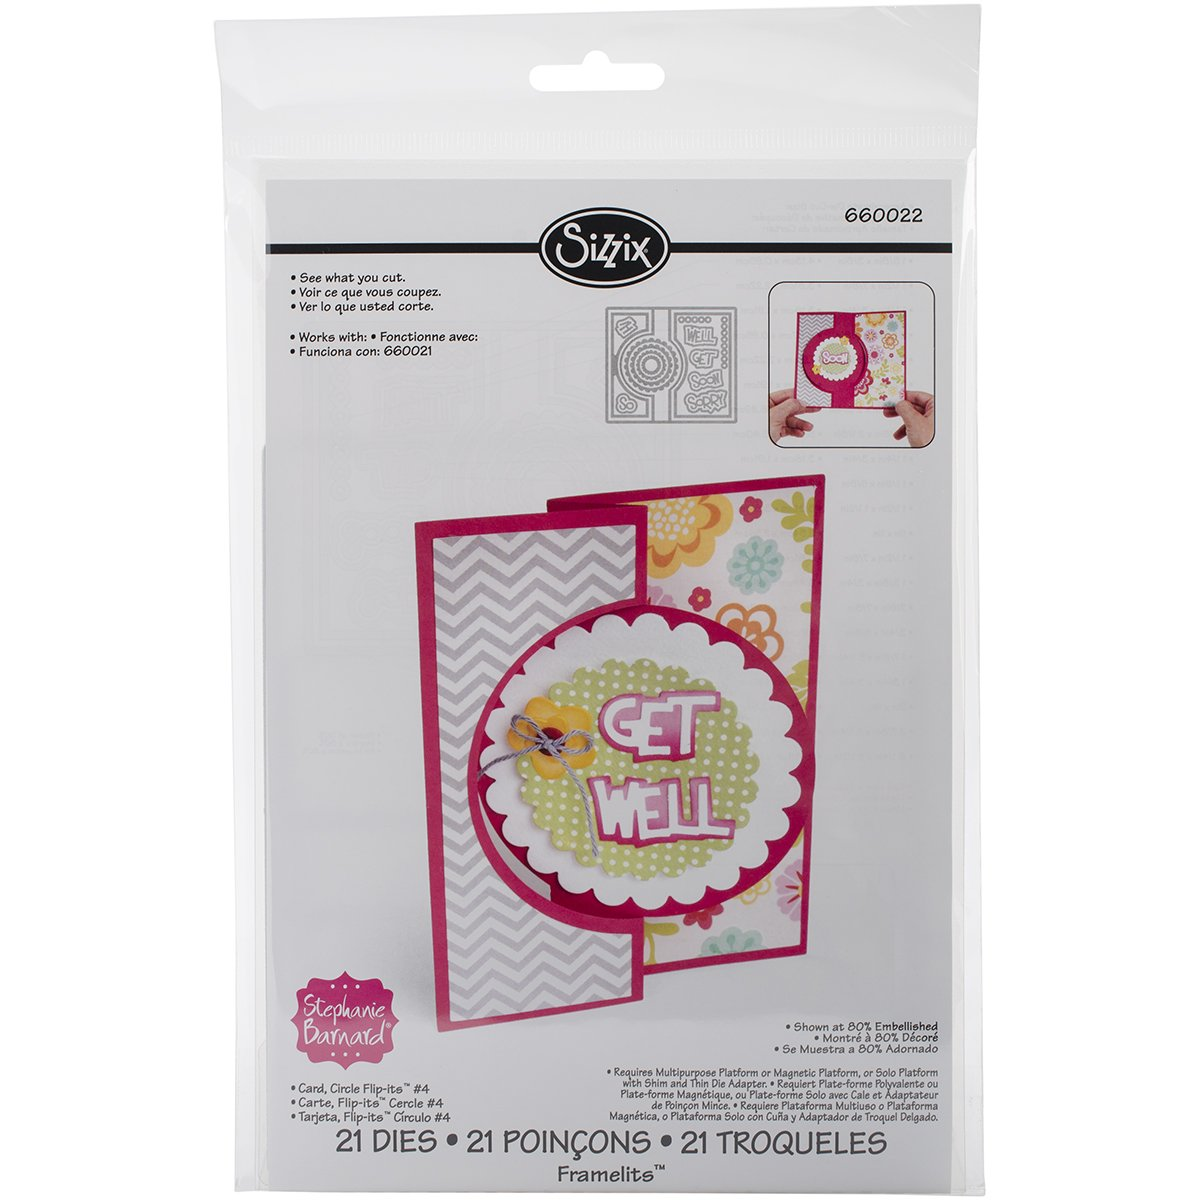 Amazon.com: Brand New Sizzix Framelits Dies By Stephanie ...